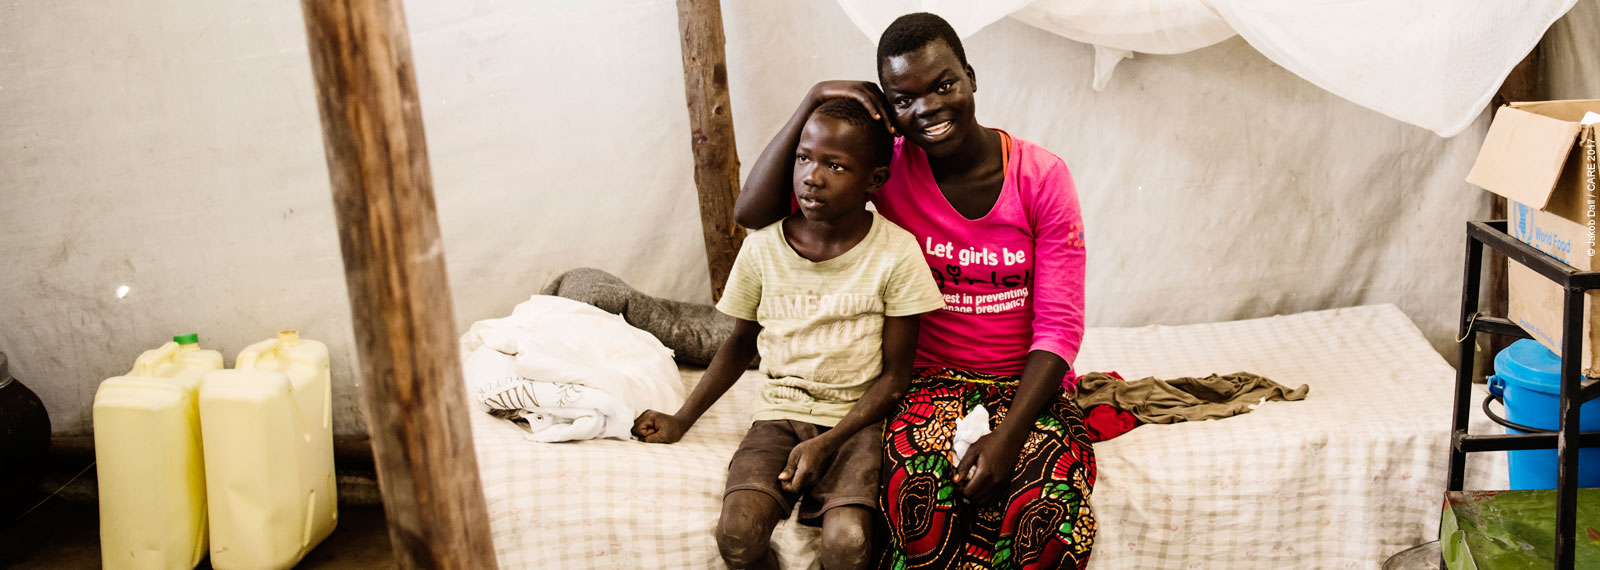 South Sudanese refugee girl and boy in a tent in Uganda refugee camp